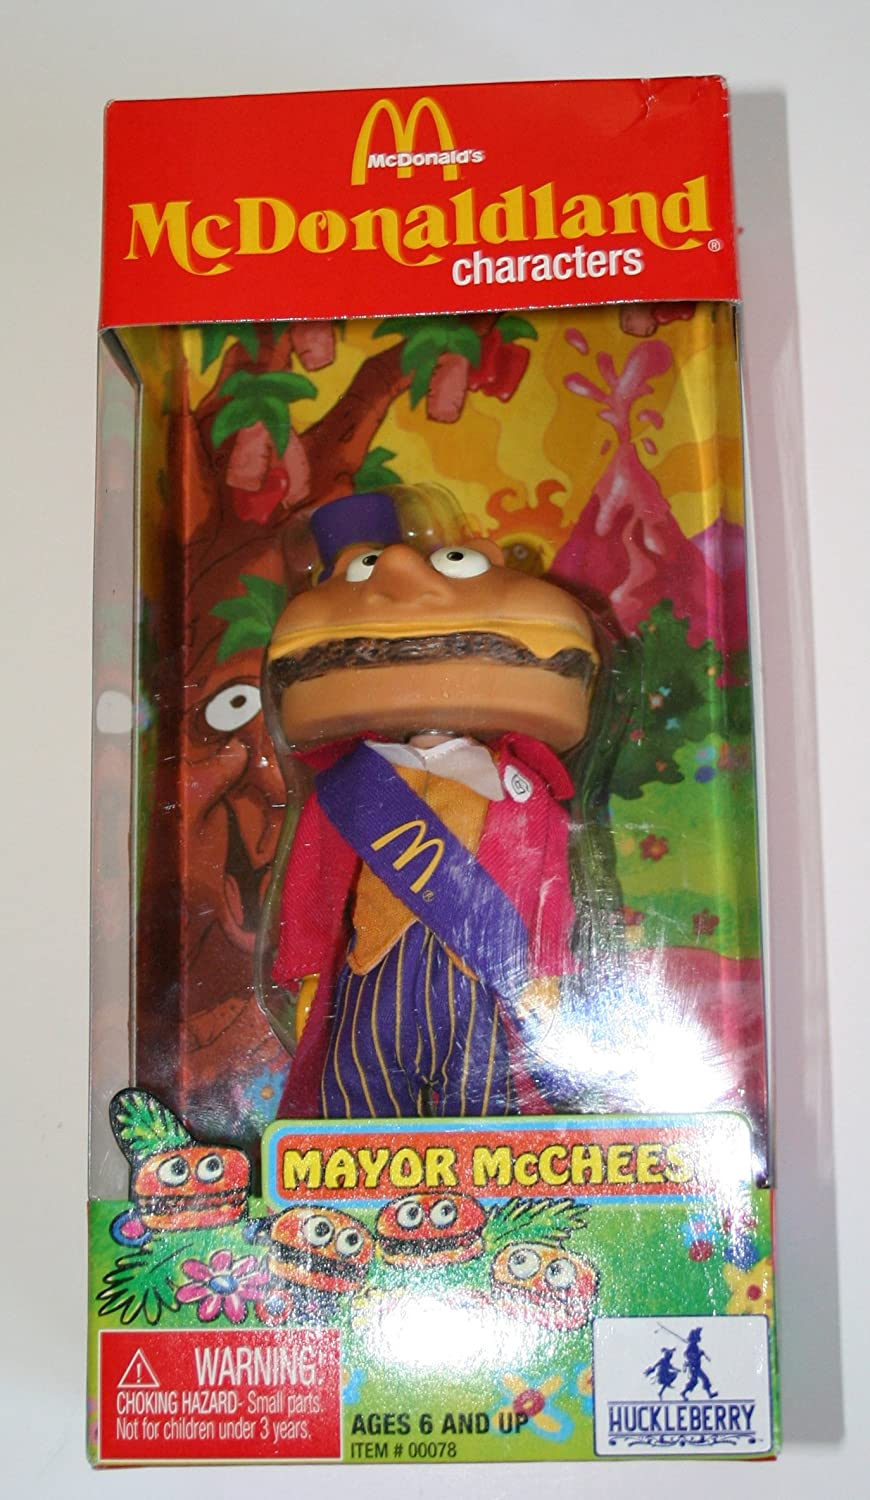 Amazon Com Mcdonald S Mcdonaldland Figure Mayor Mccheese Toys Games Mayor mccheese is the best. mcdonald s mcdonaldland figure mayor mccheese